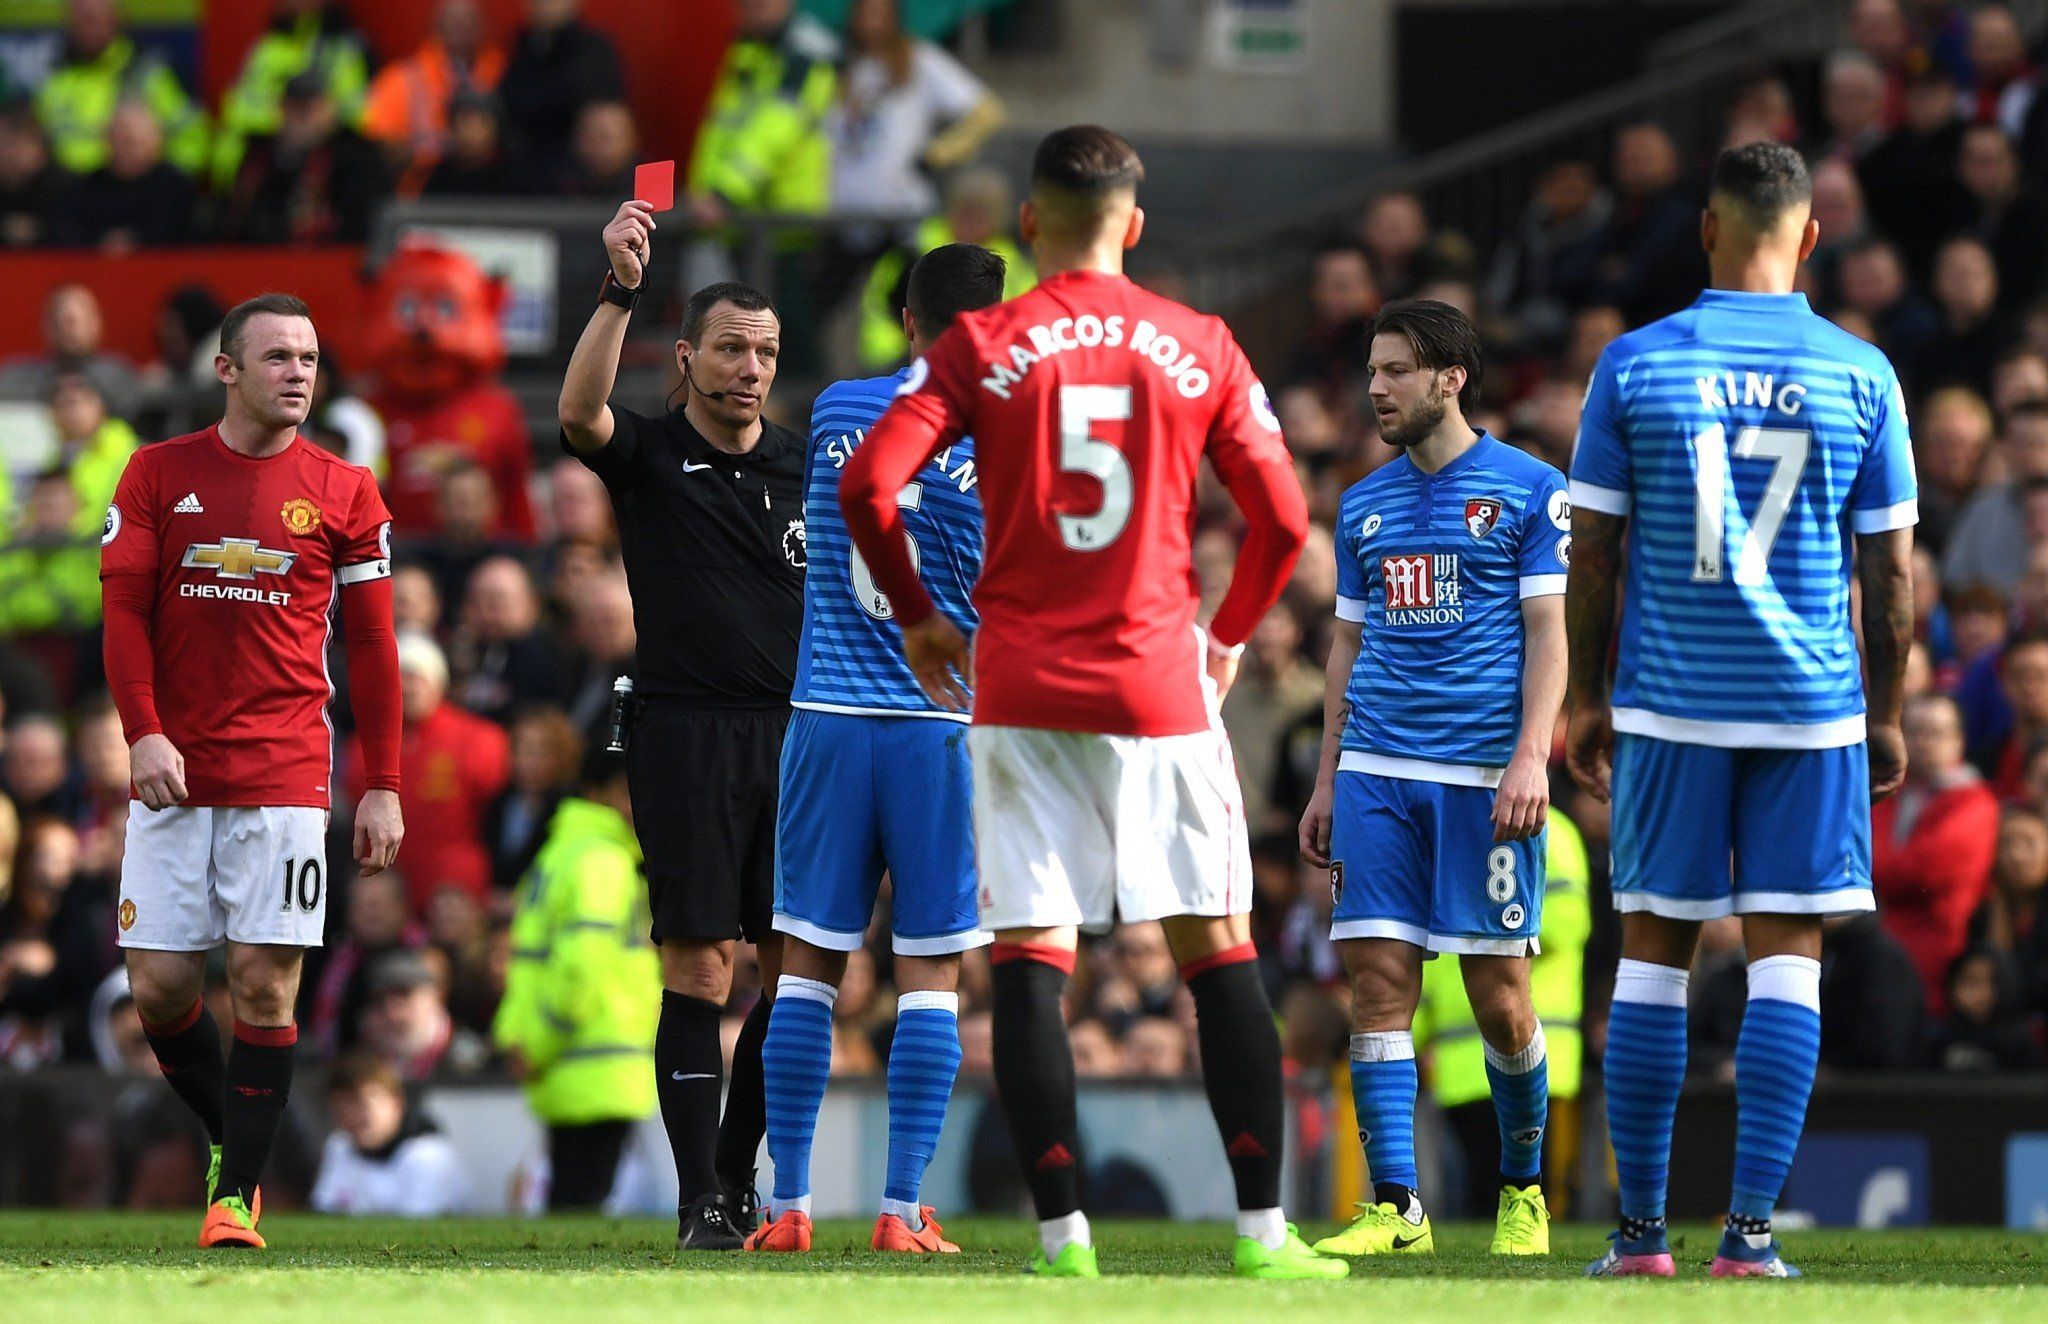 Kevin Friend remembers he has already booked Andrew Surman so shows him a red card